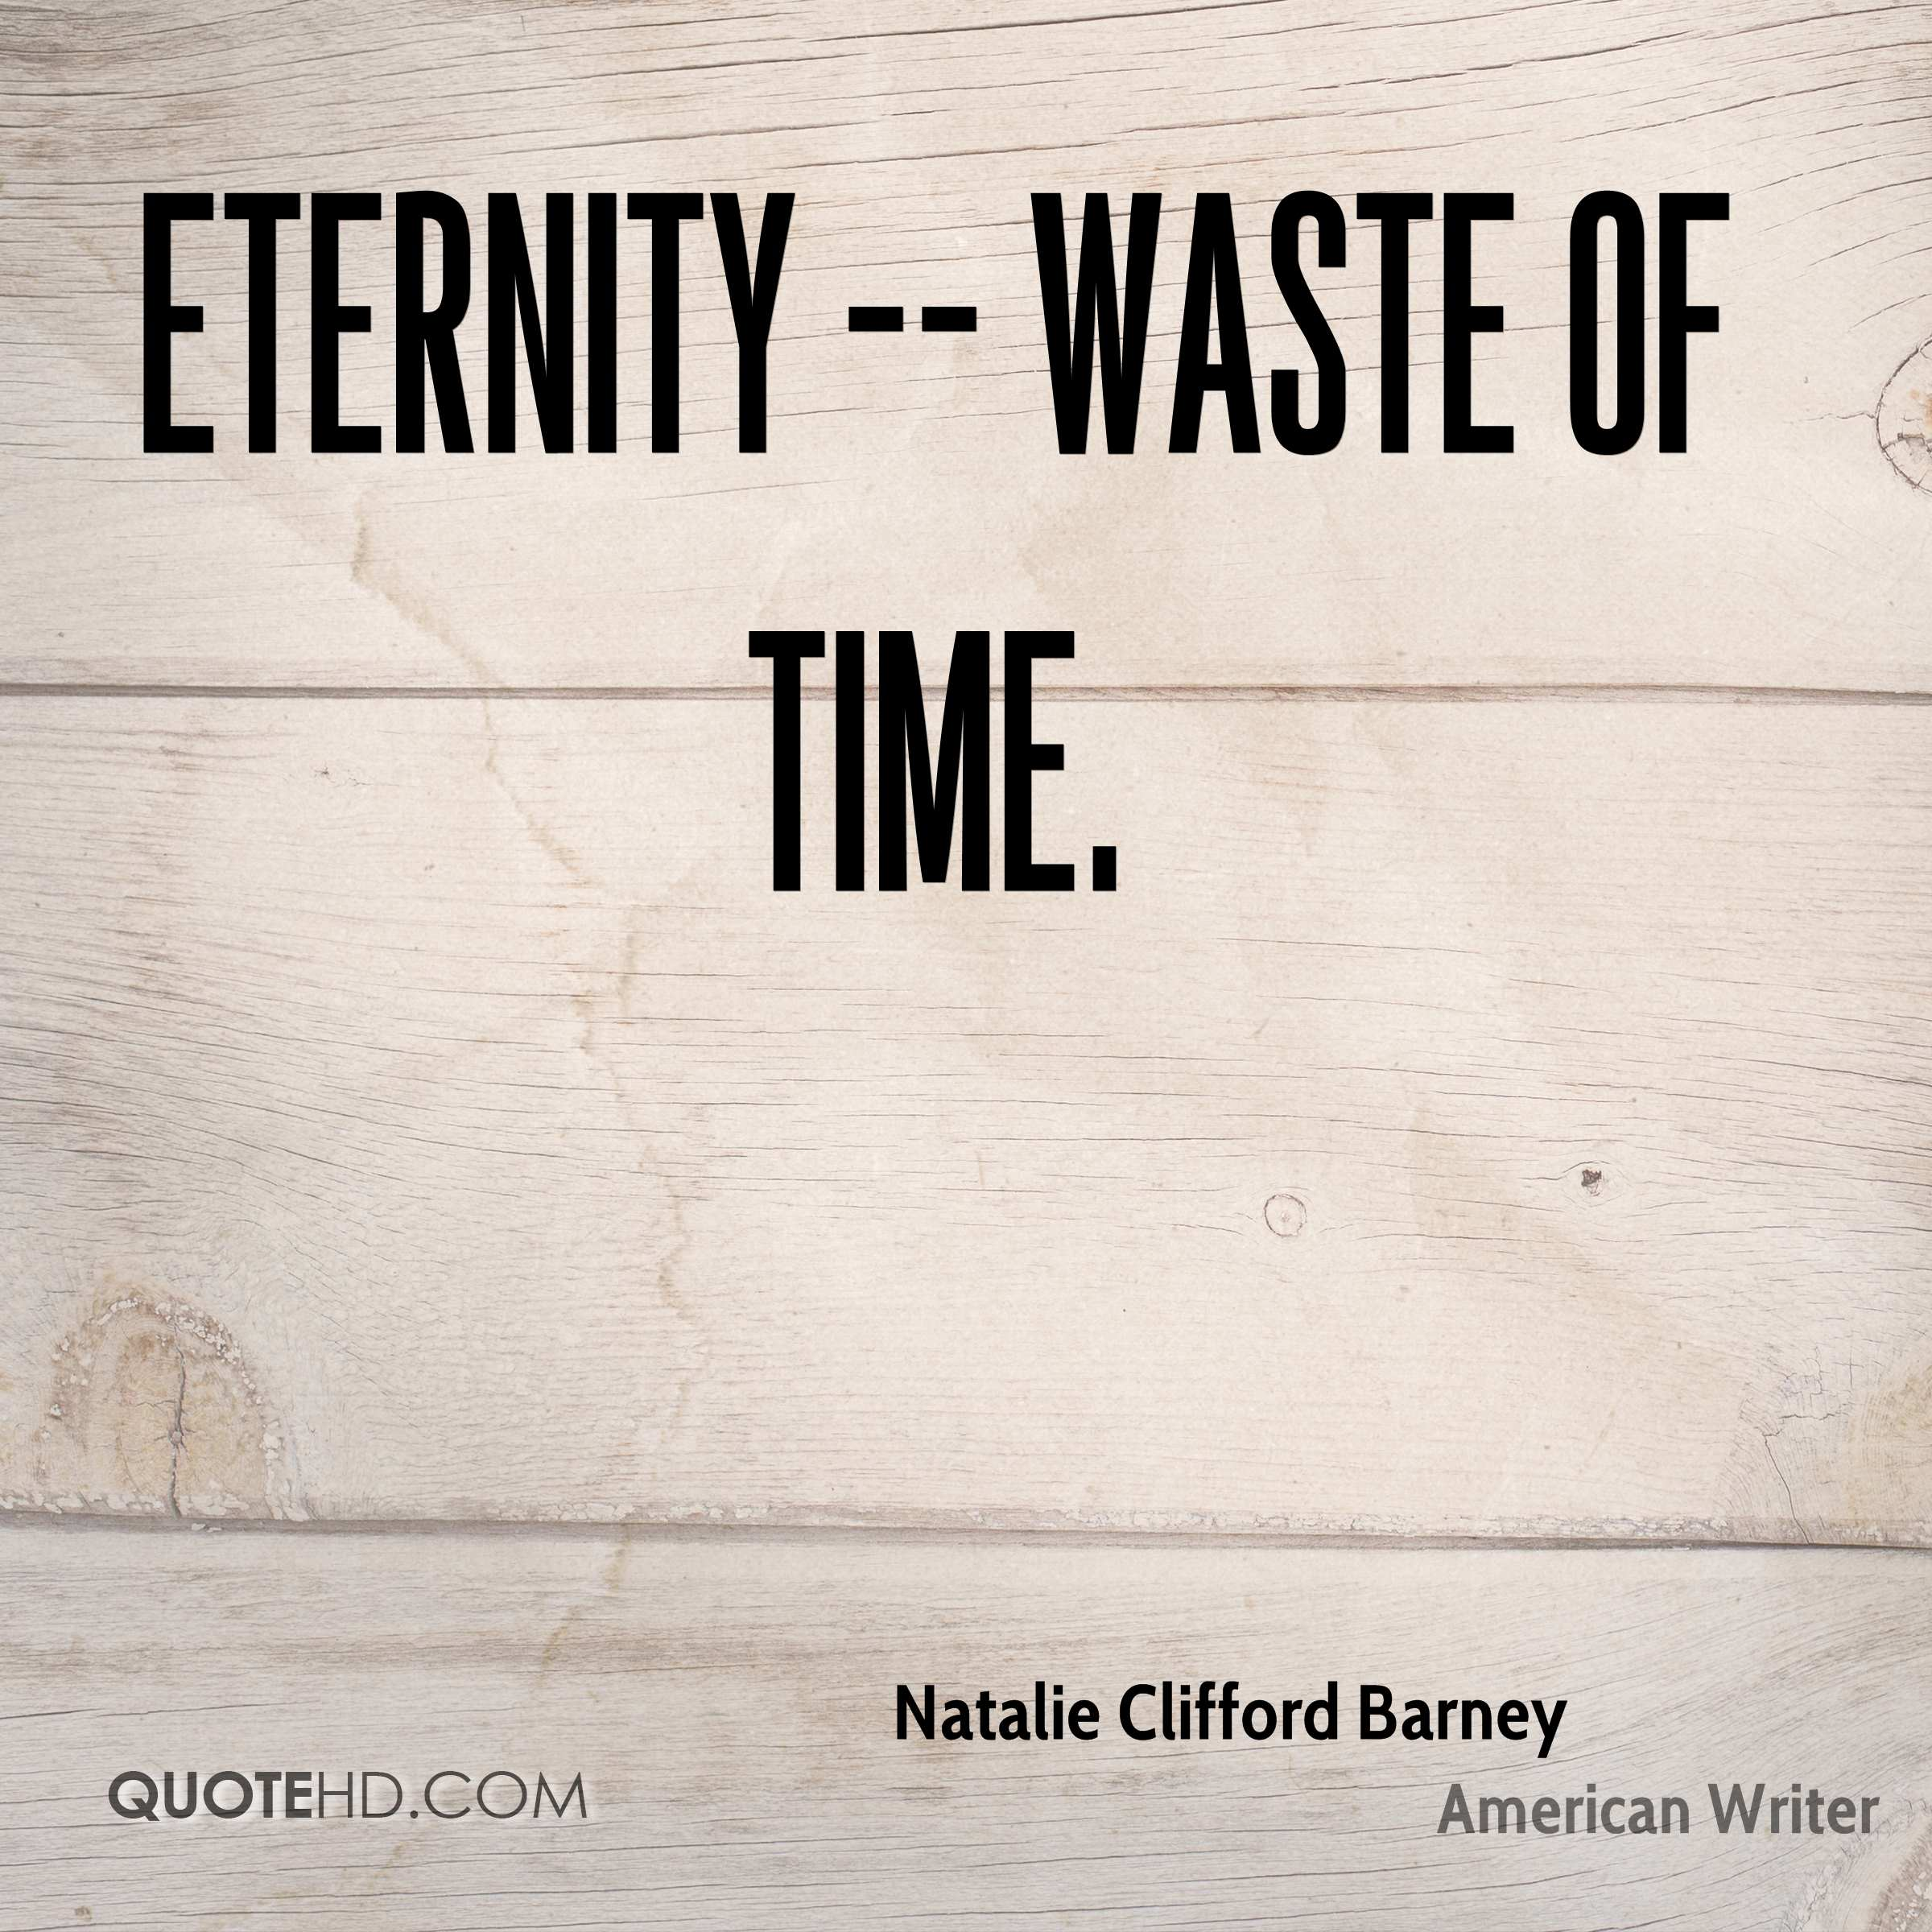 Eternity -- waste of time.